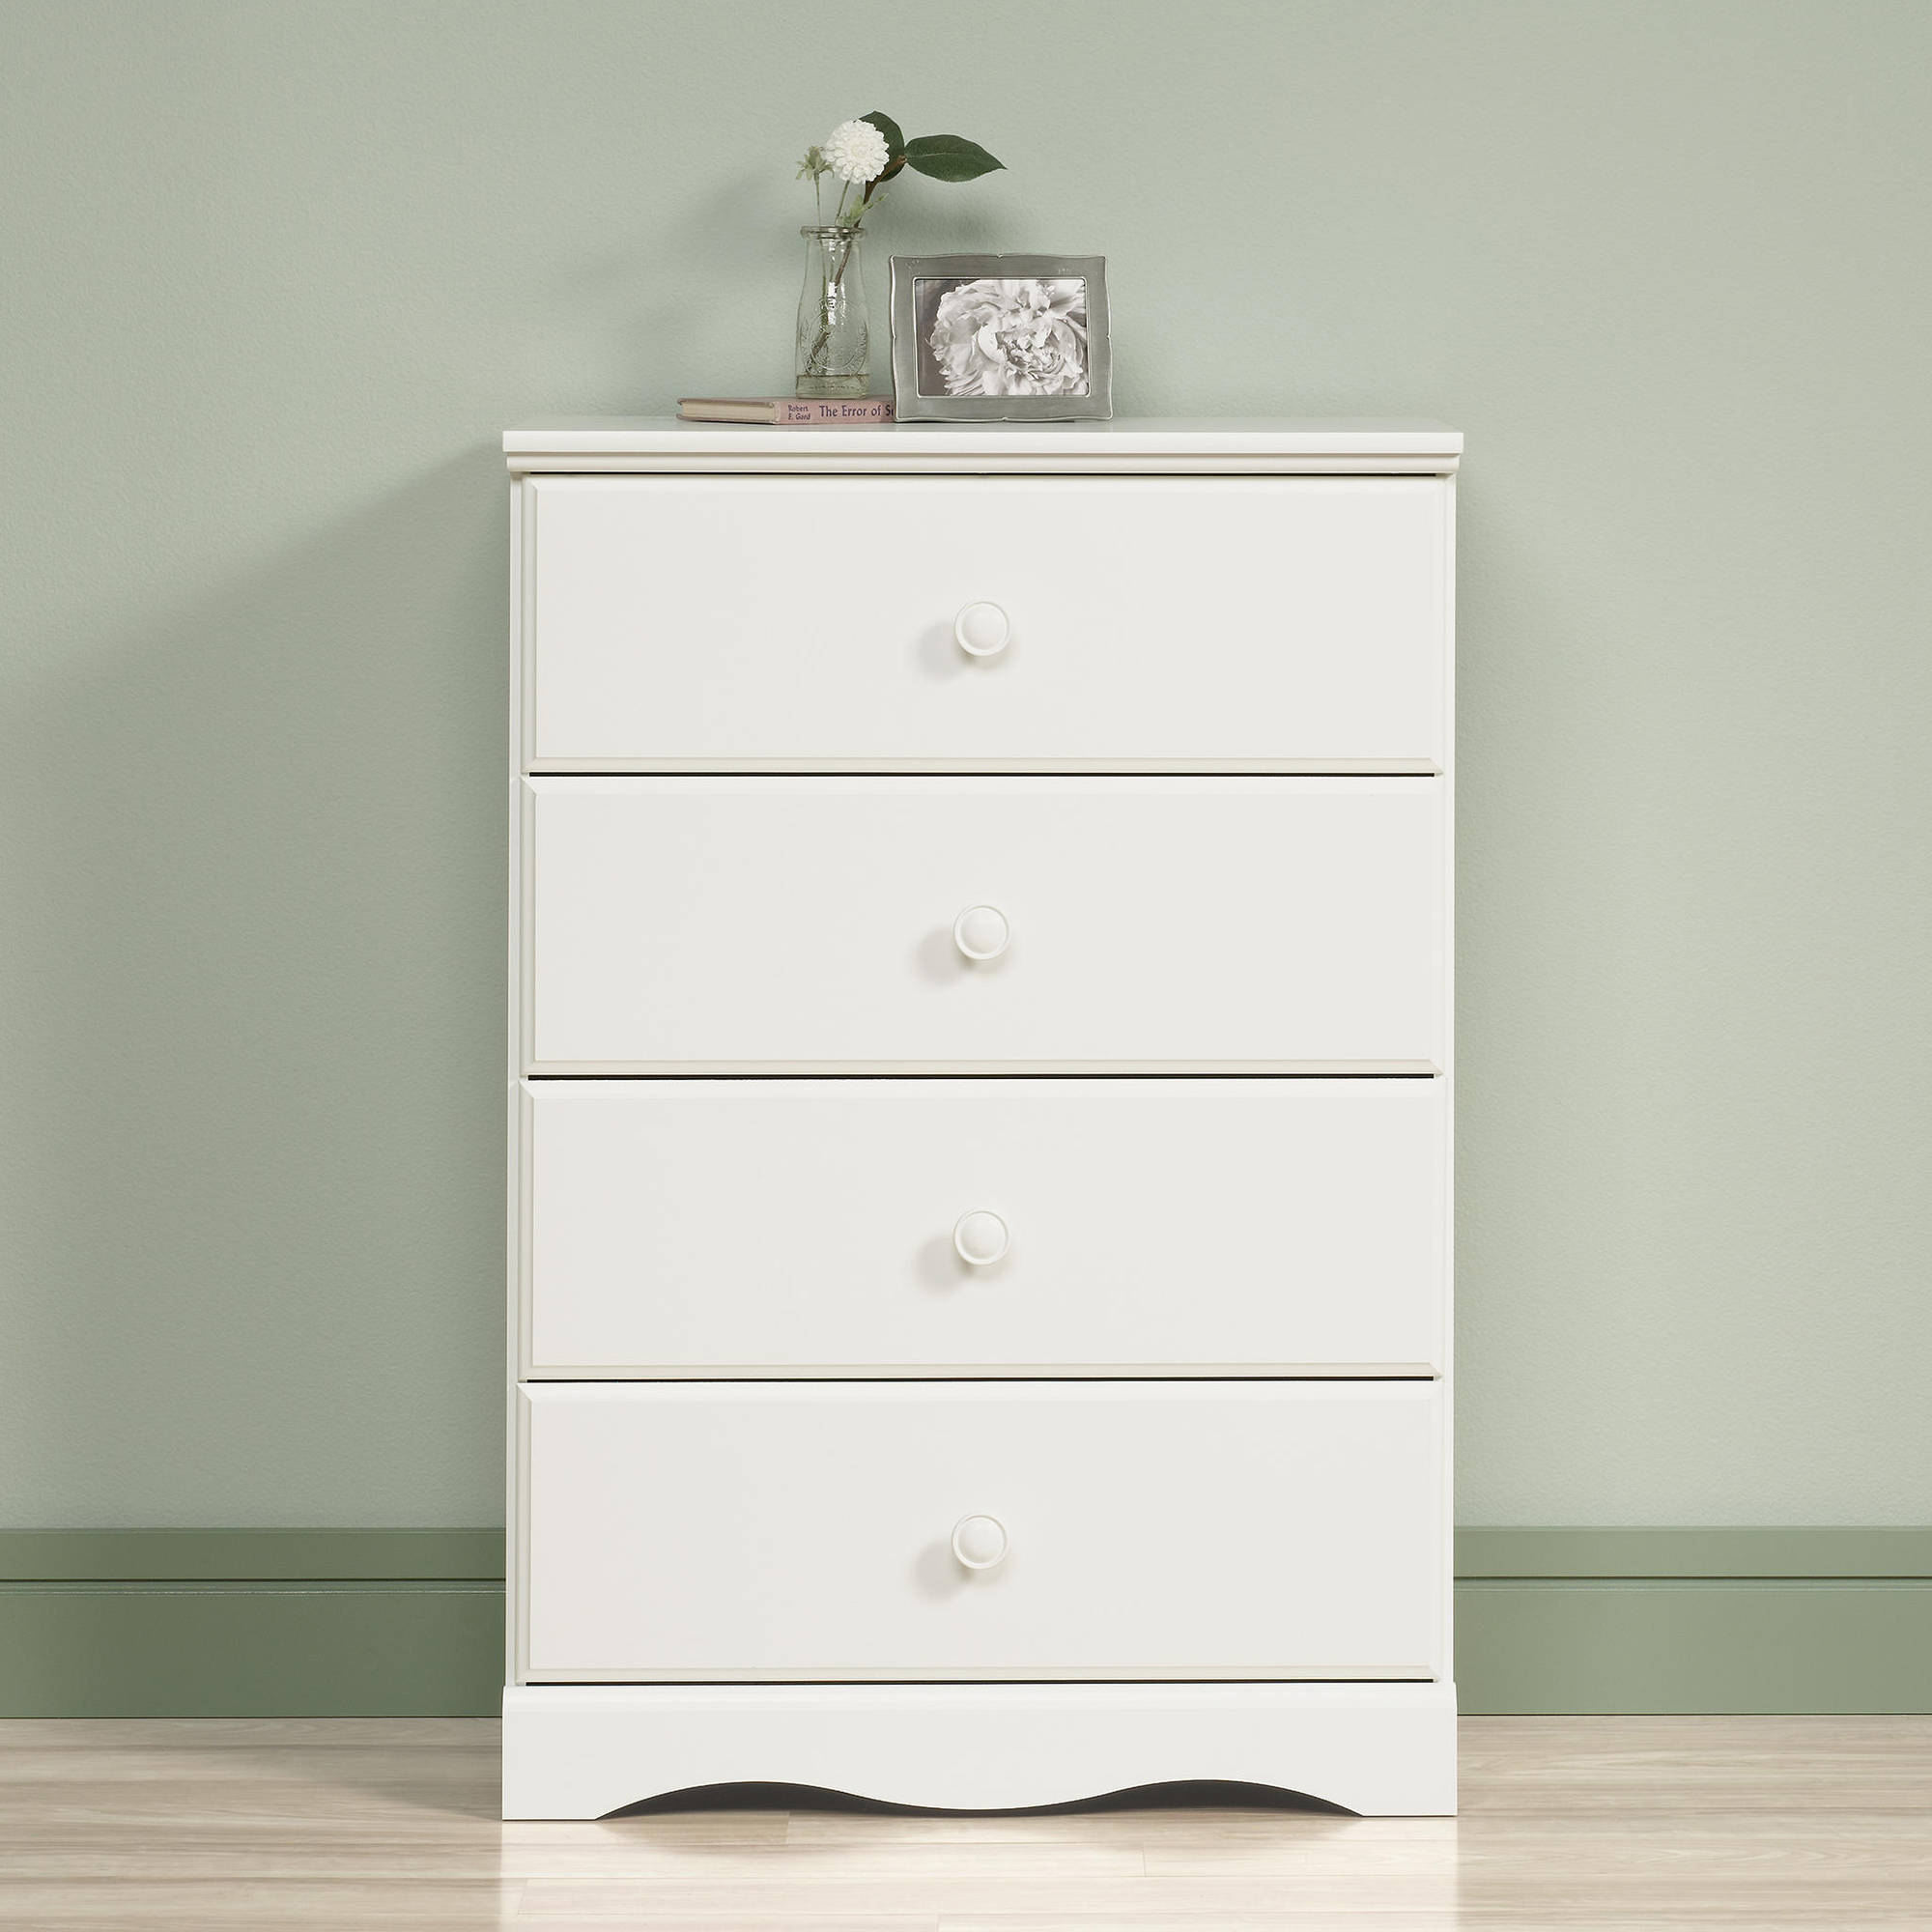 Sauder Storybook 4-Drawer Chest, Soft White finish by Sauder Woodworking